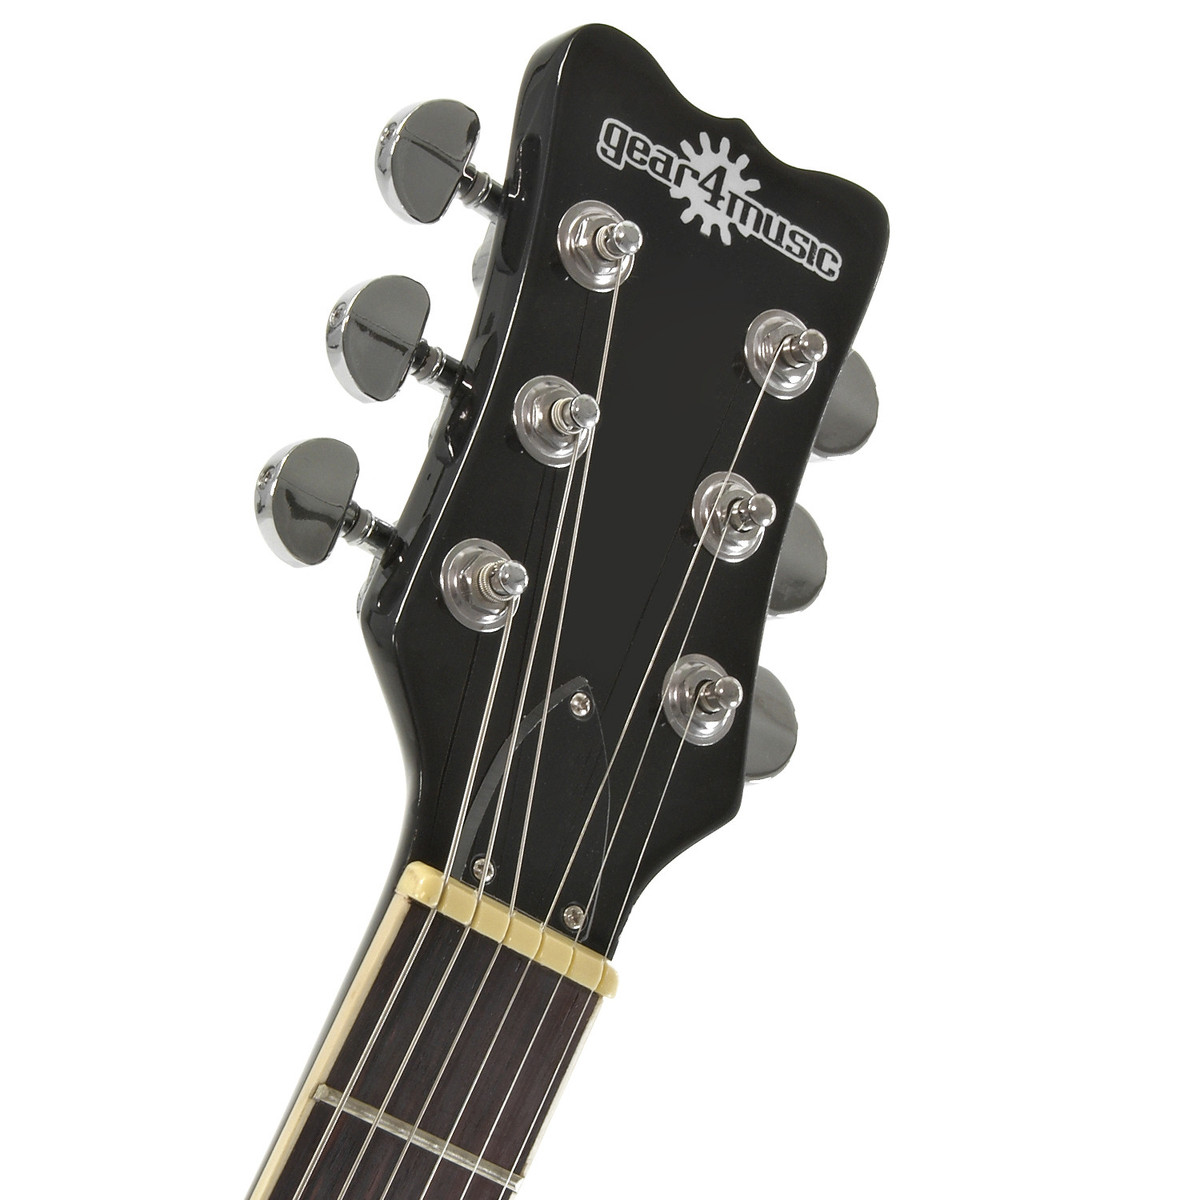 new jersey electric guitar by gear4music union jack nearly new at gear4music. Black Bedroom Furniture Sets. Home Design Ideas